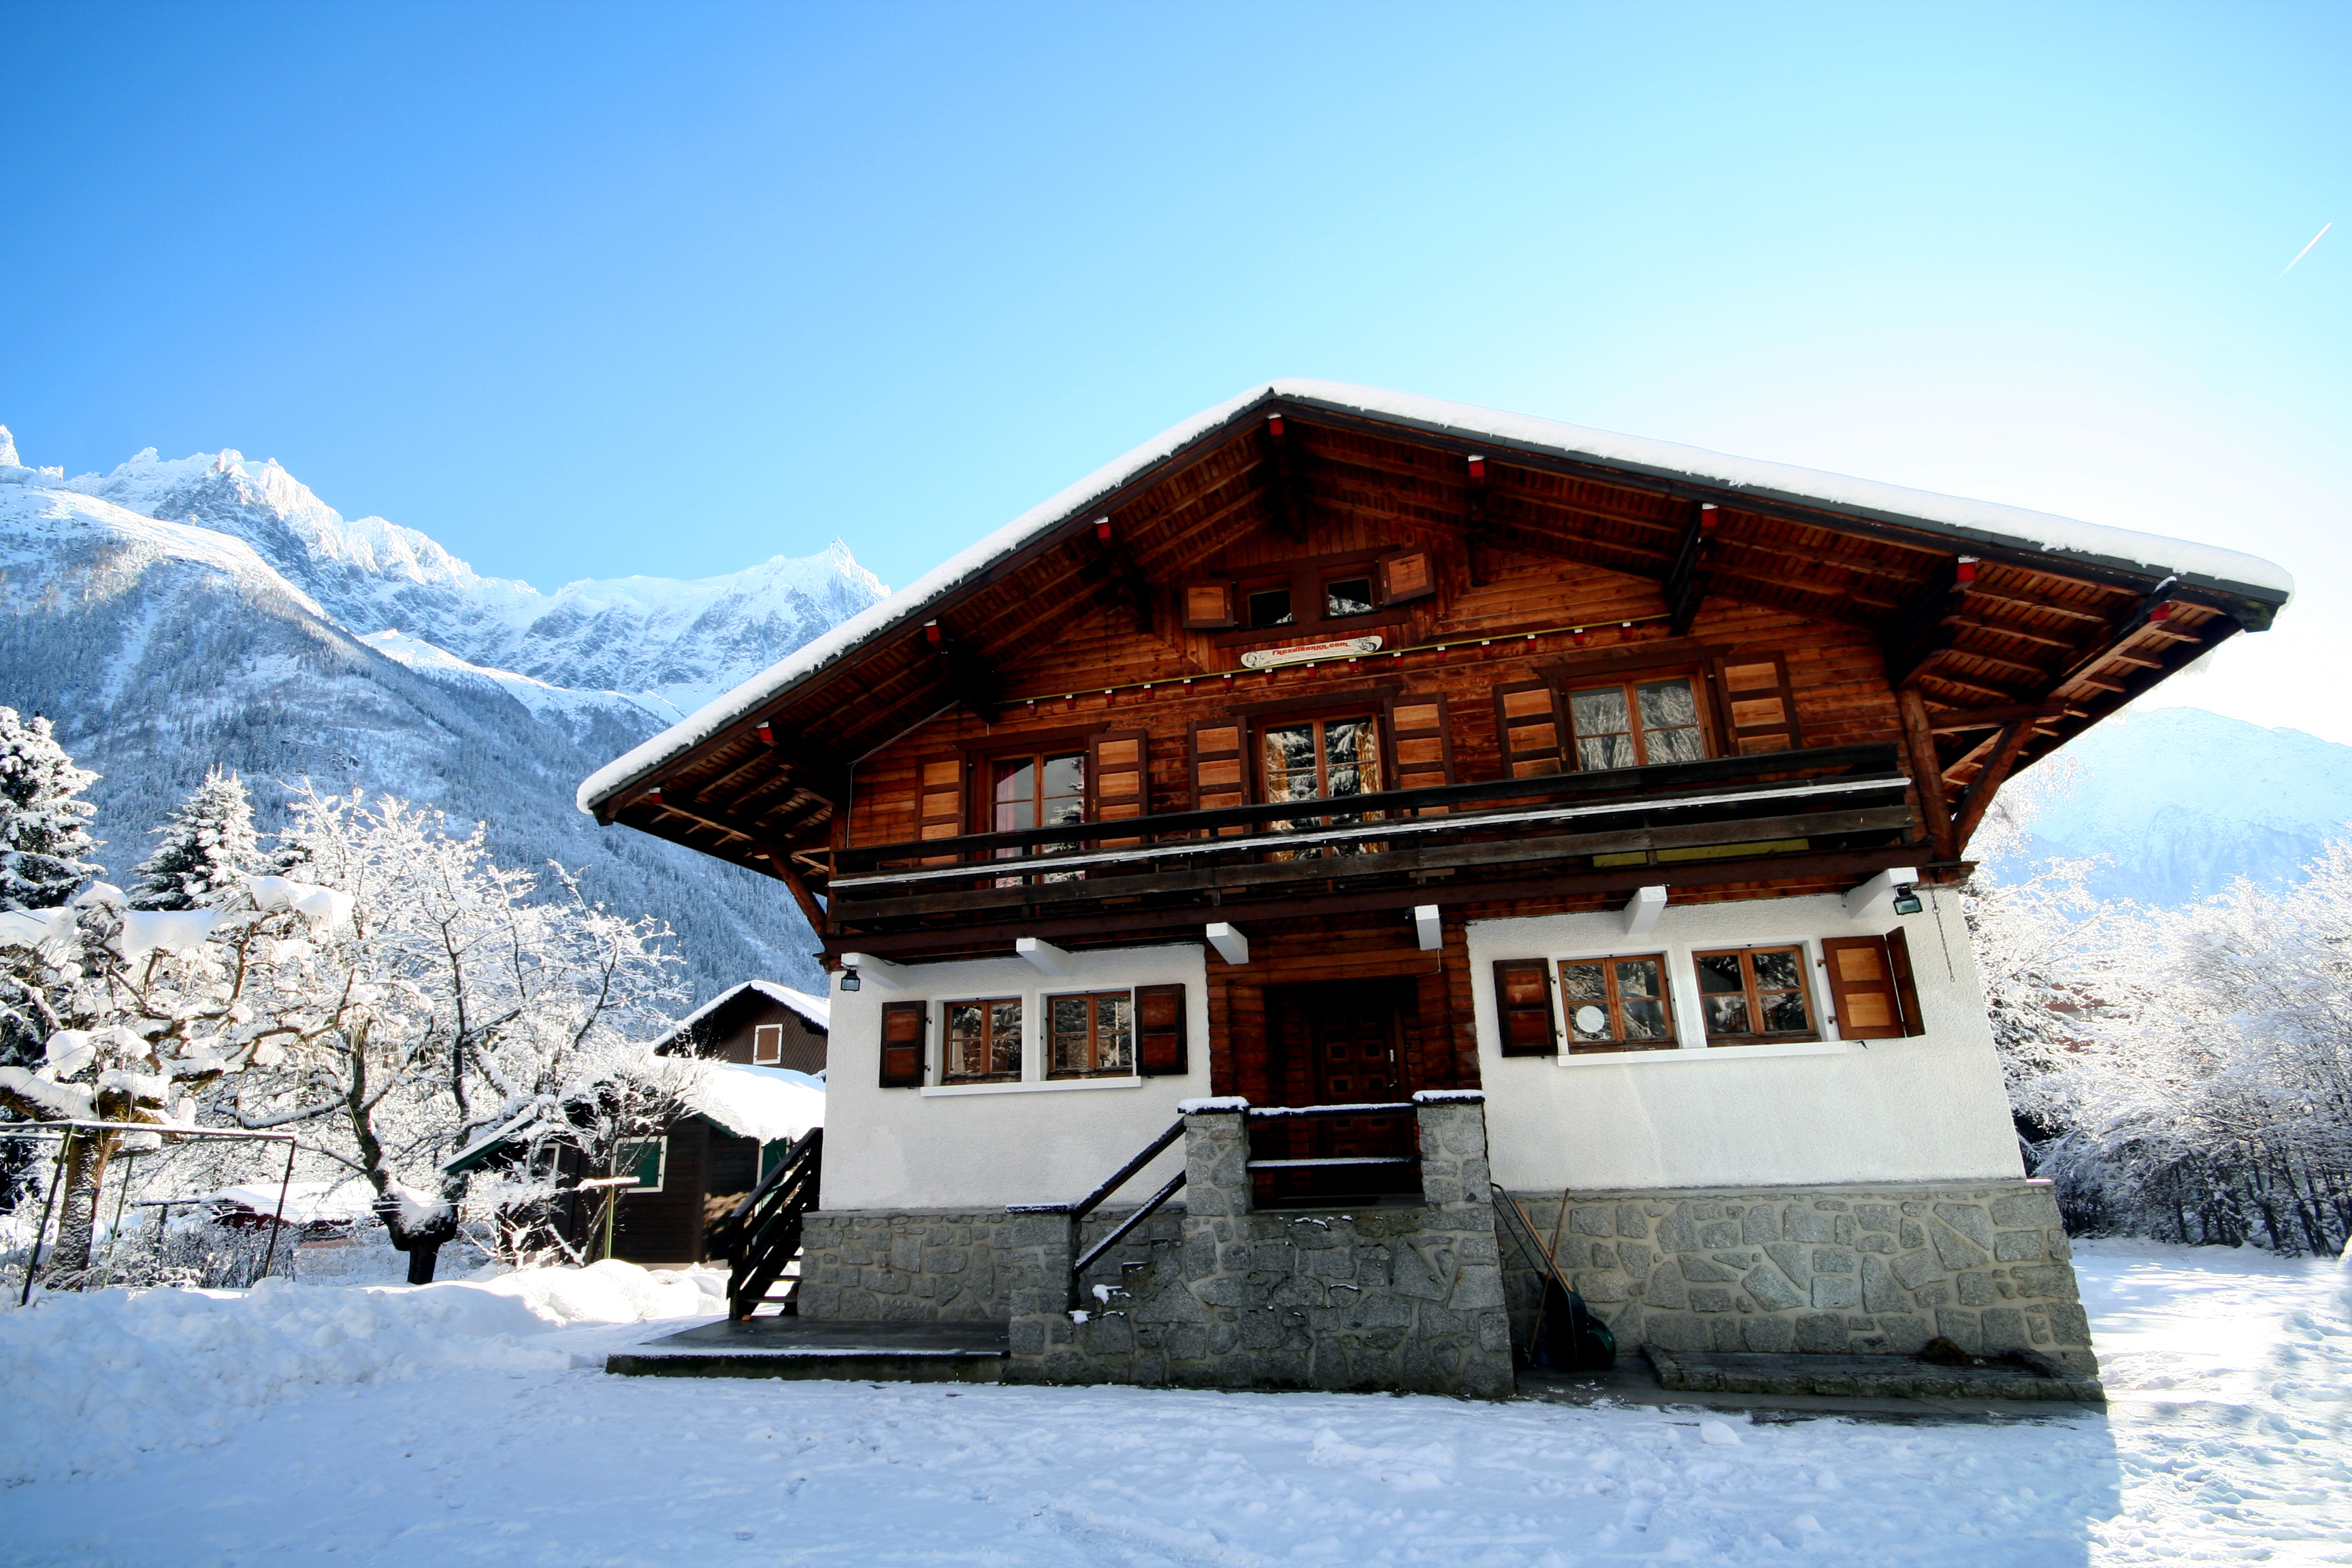 Join 'Our Retreat' in Chamonix this February